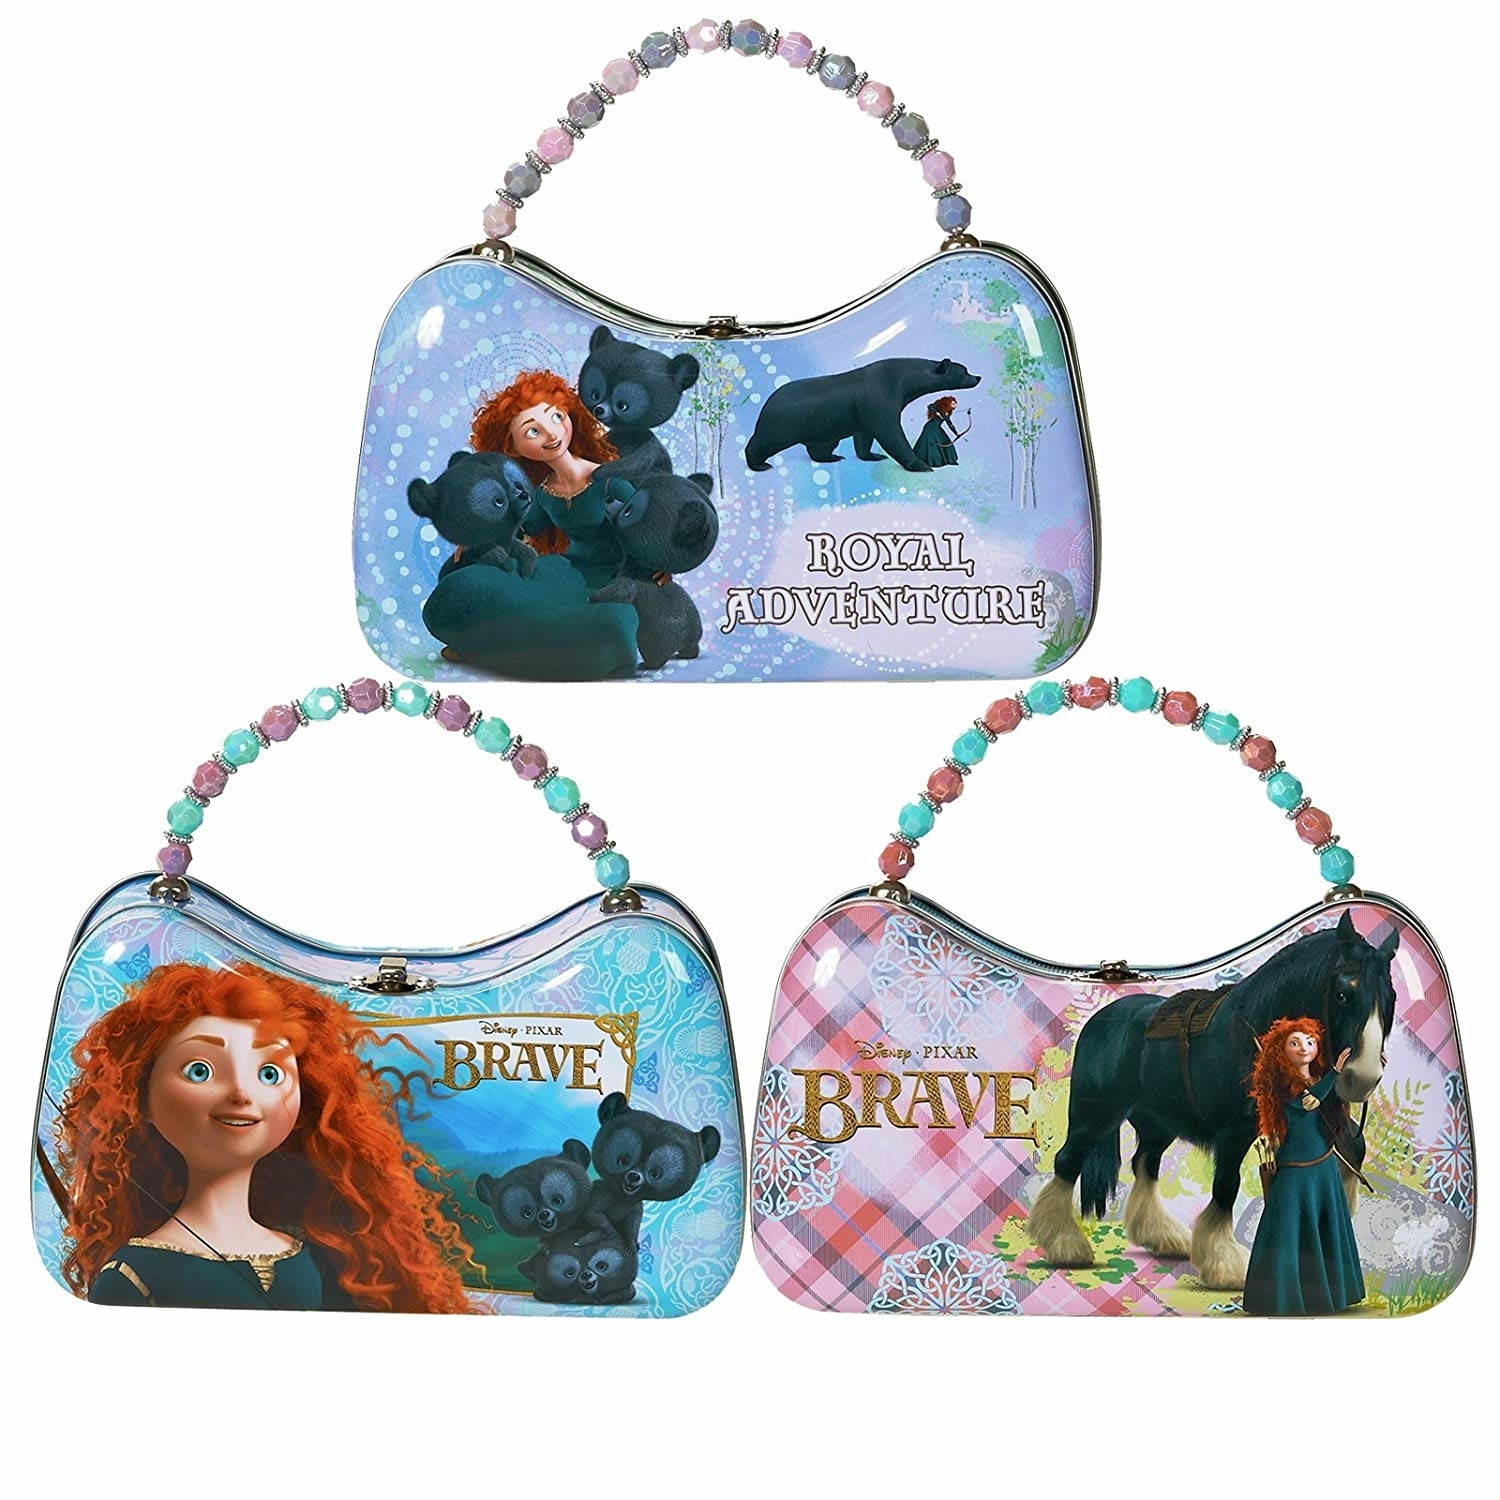 Disney Brave Scoop Purse - Style May Vary (RandonBraveTinPurse) photo